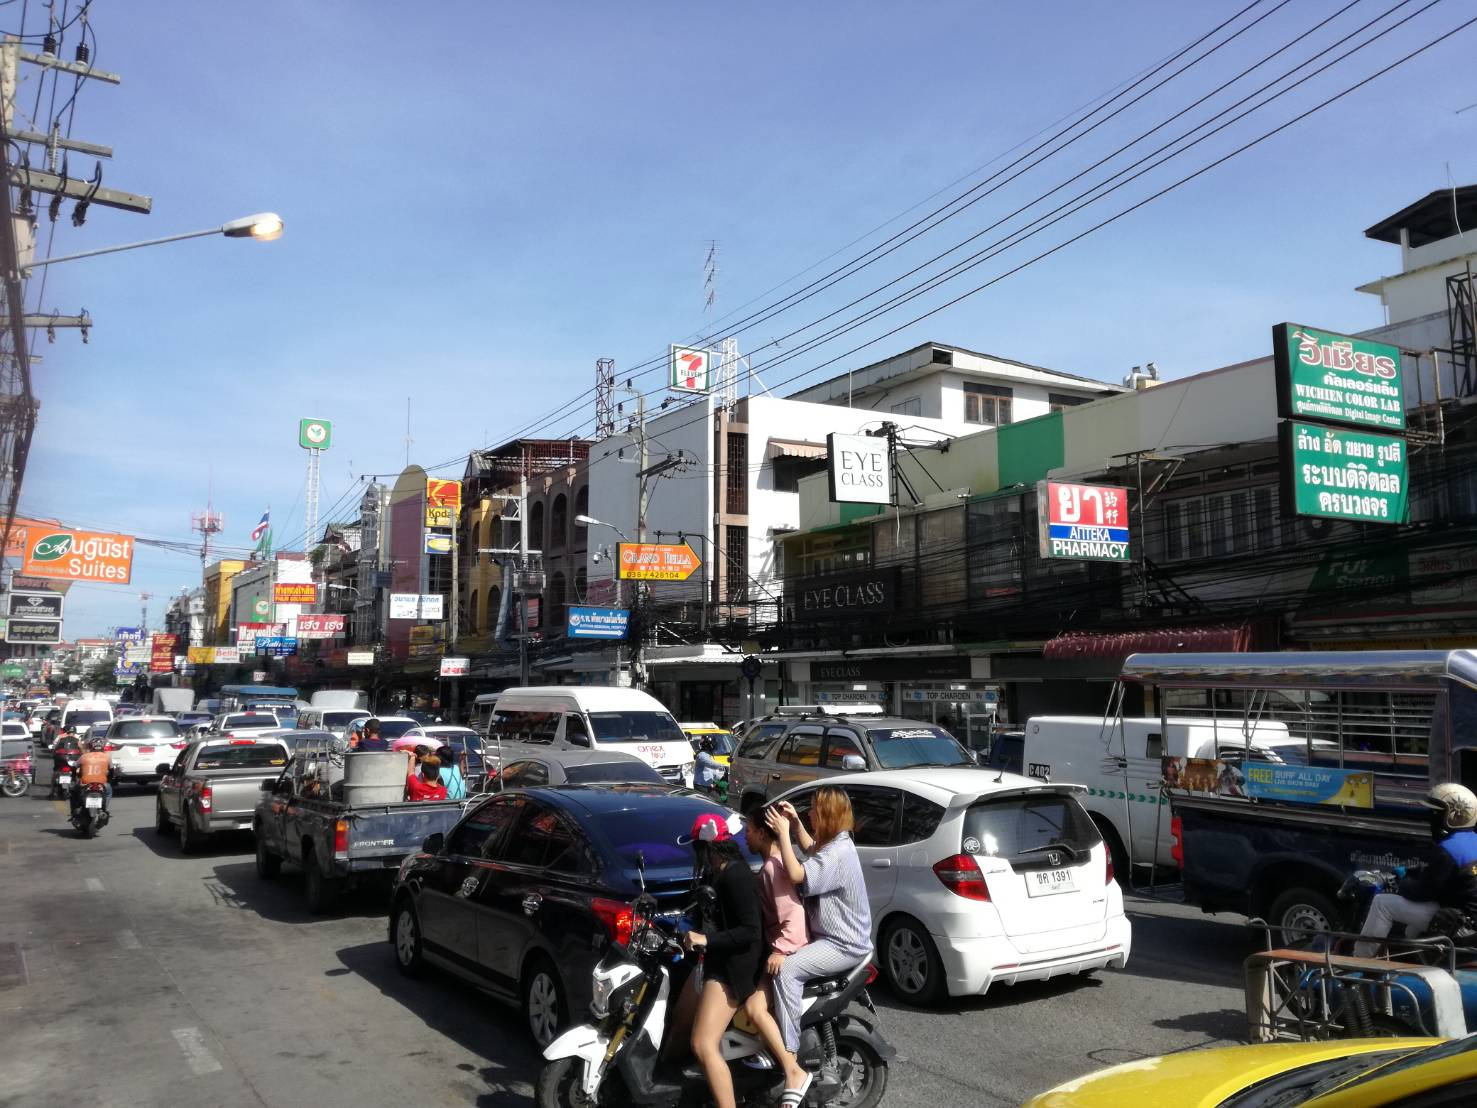 Traffic during Songkran was at a standstill throughout the long holiday.